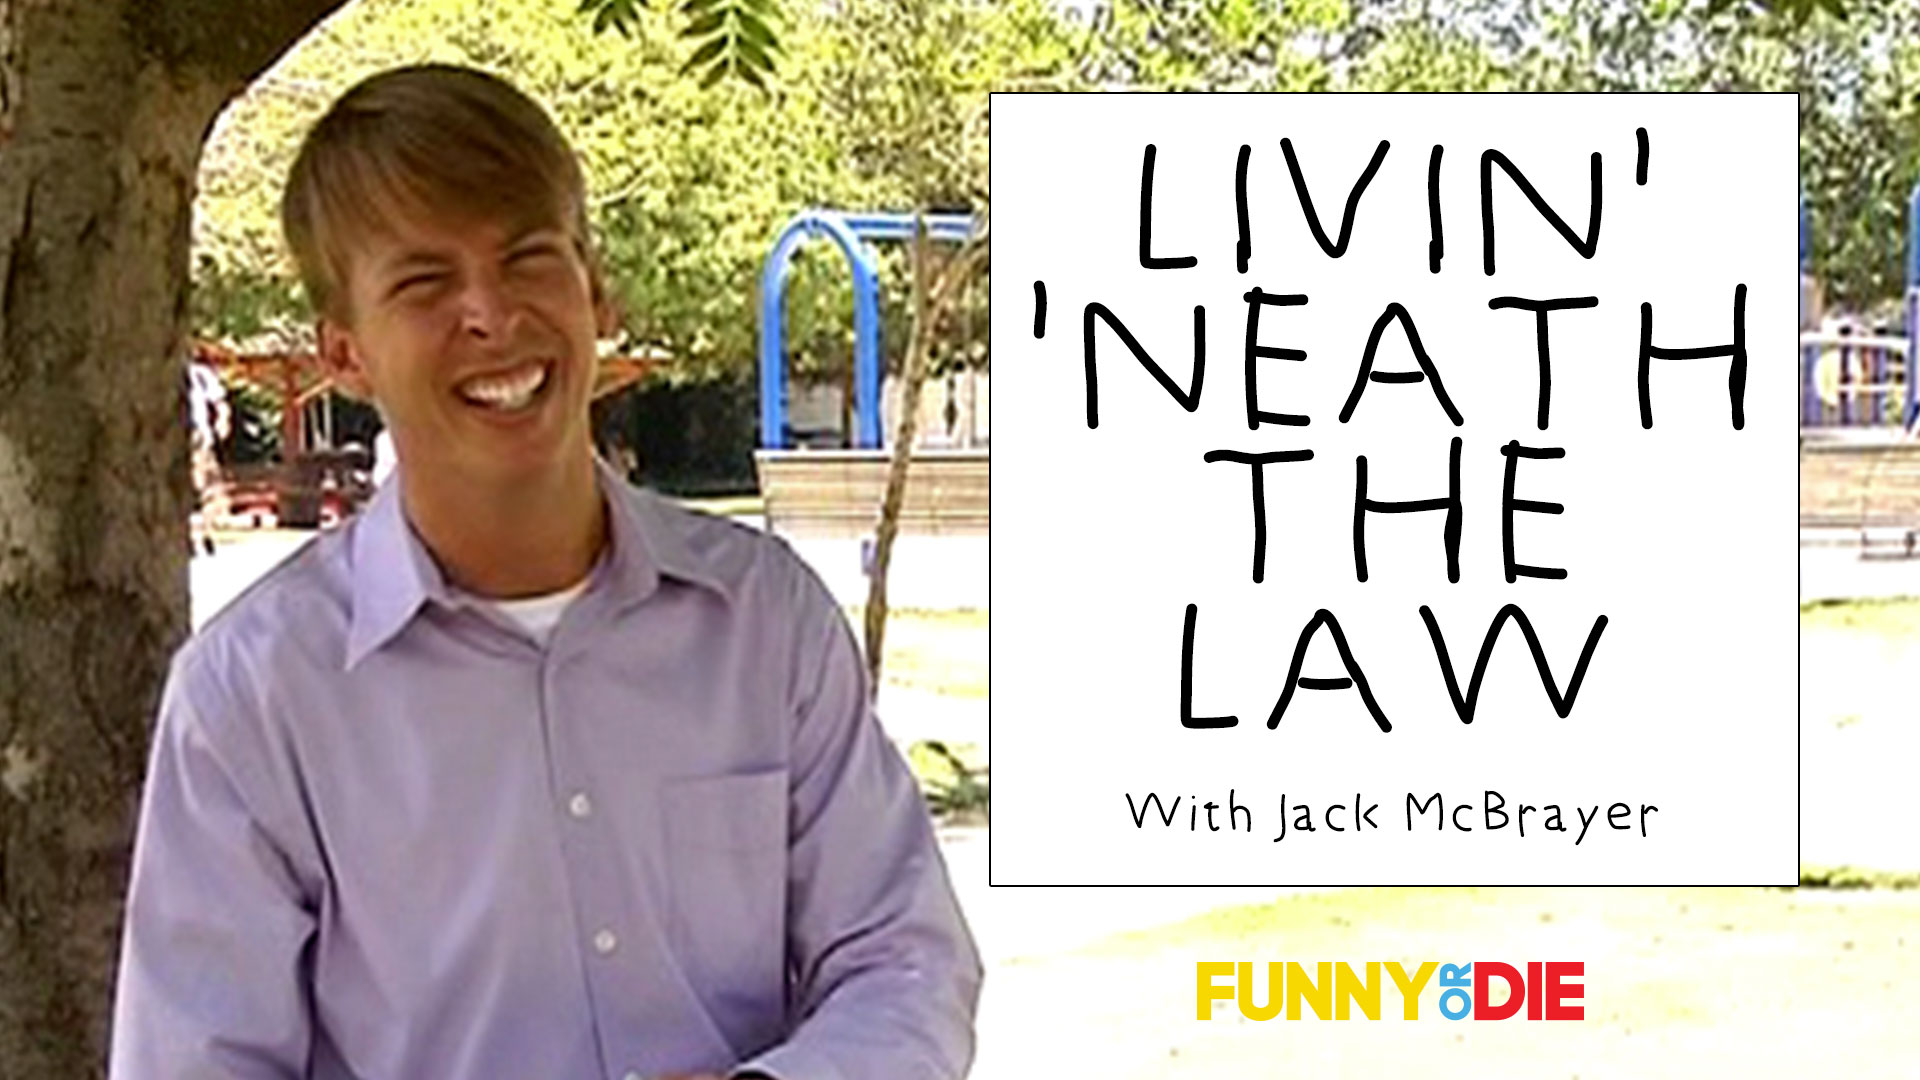 Livin' 'Neath The Law with Jack McBrayer